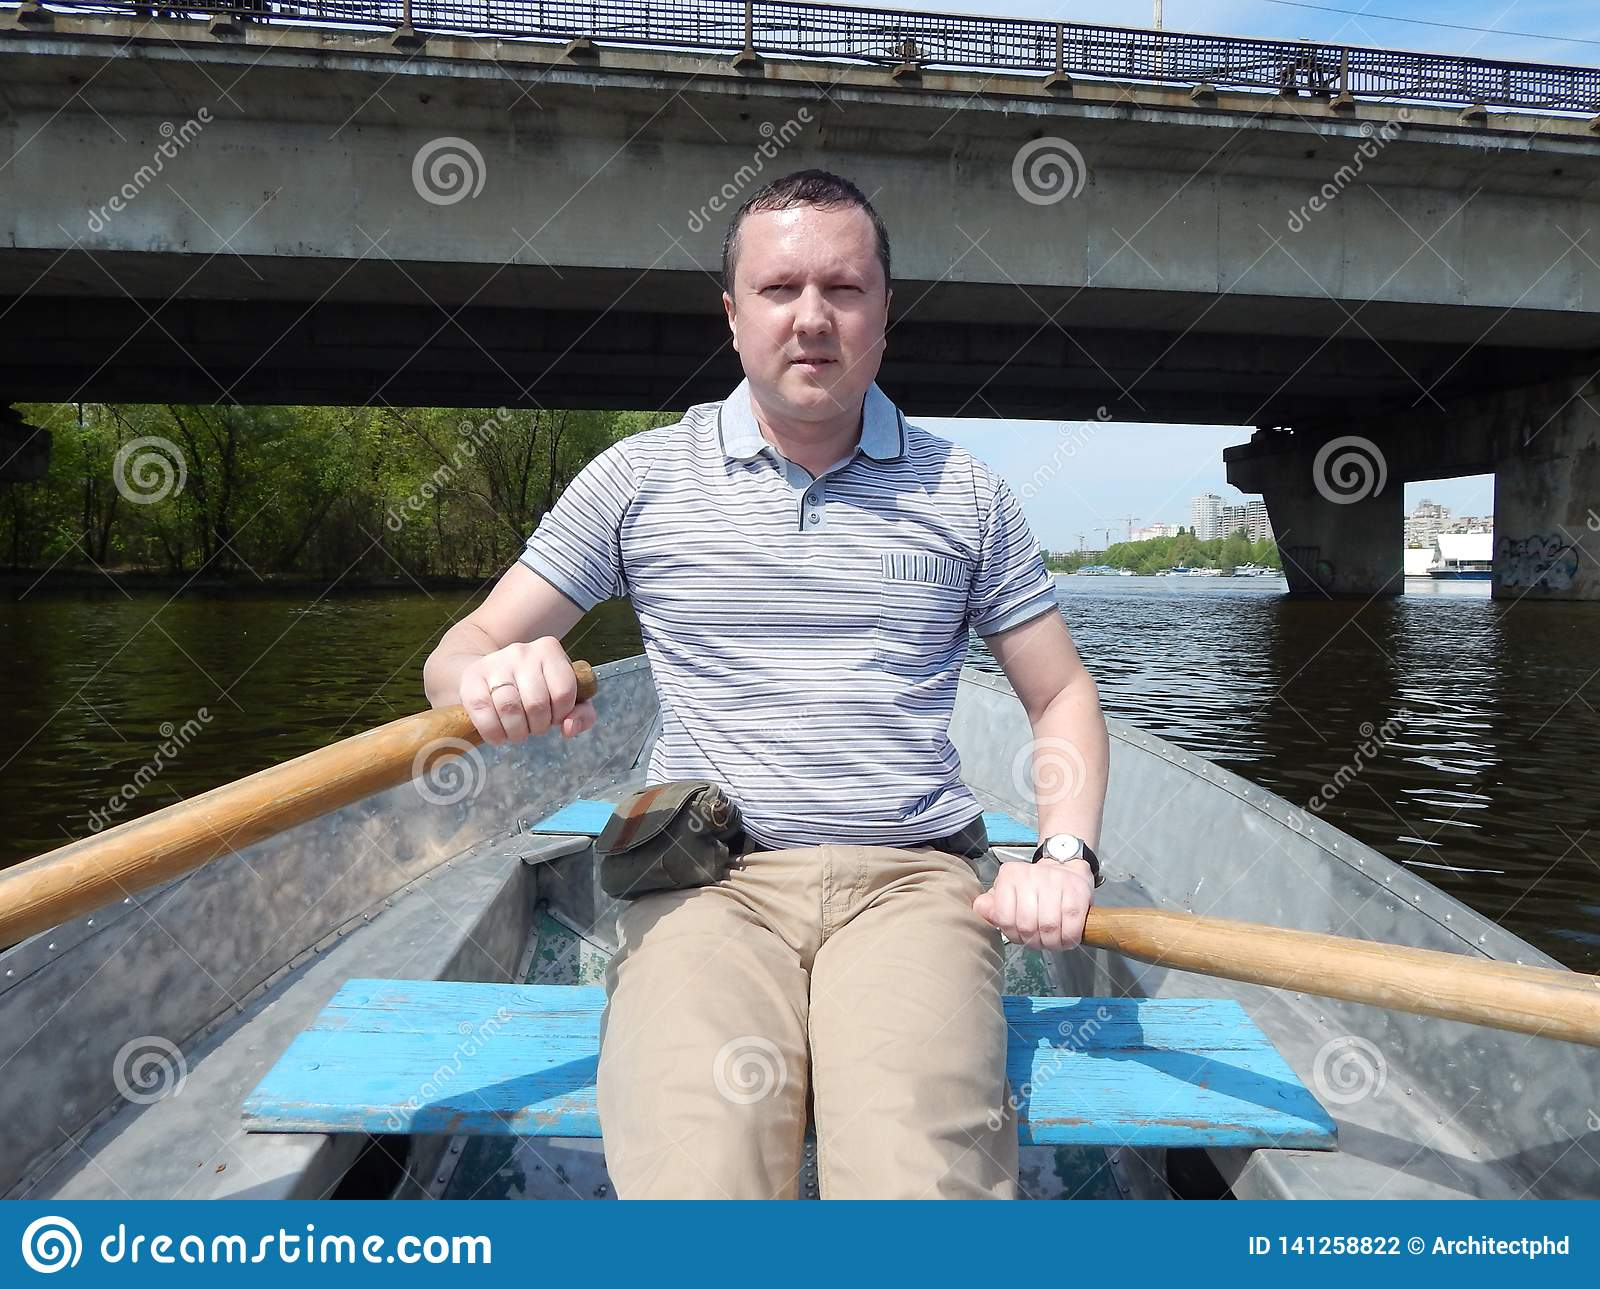 A man floating on a boat rides with